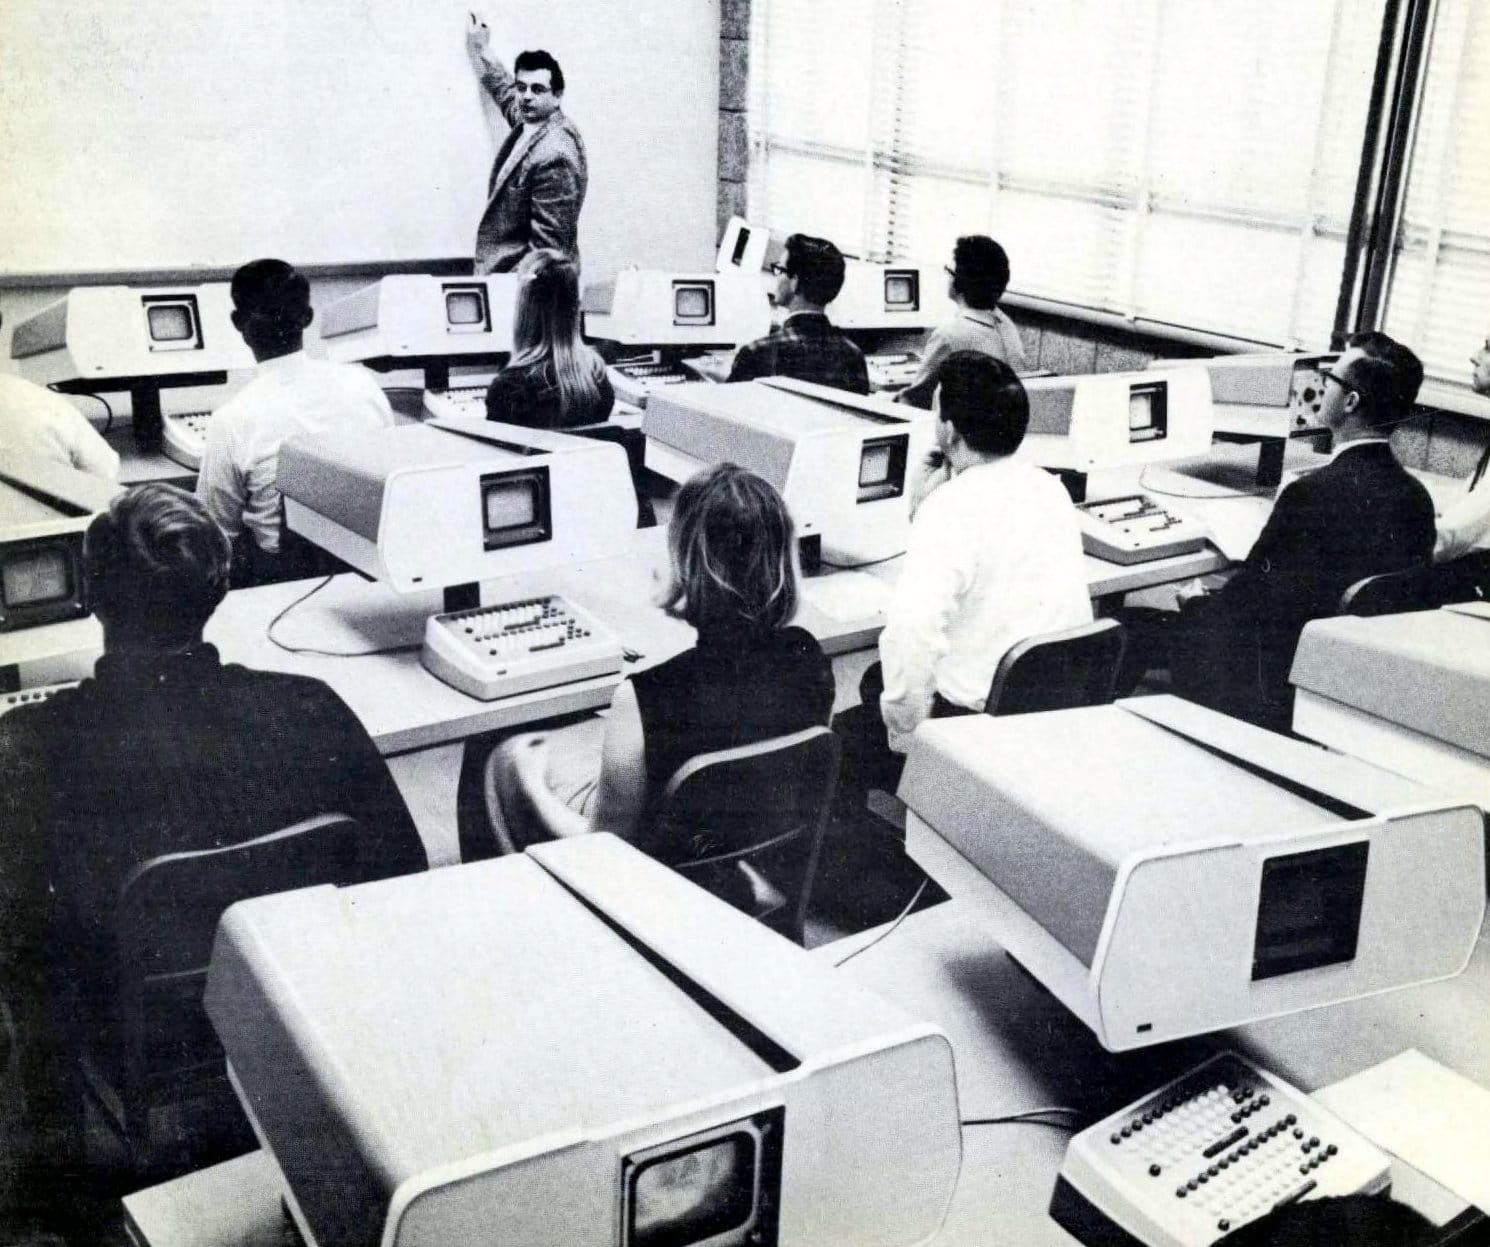 Classroom full of early computers (1966)